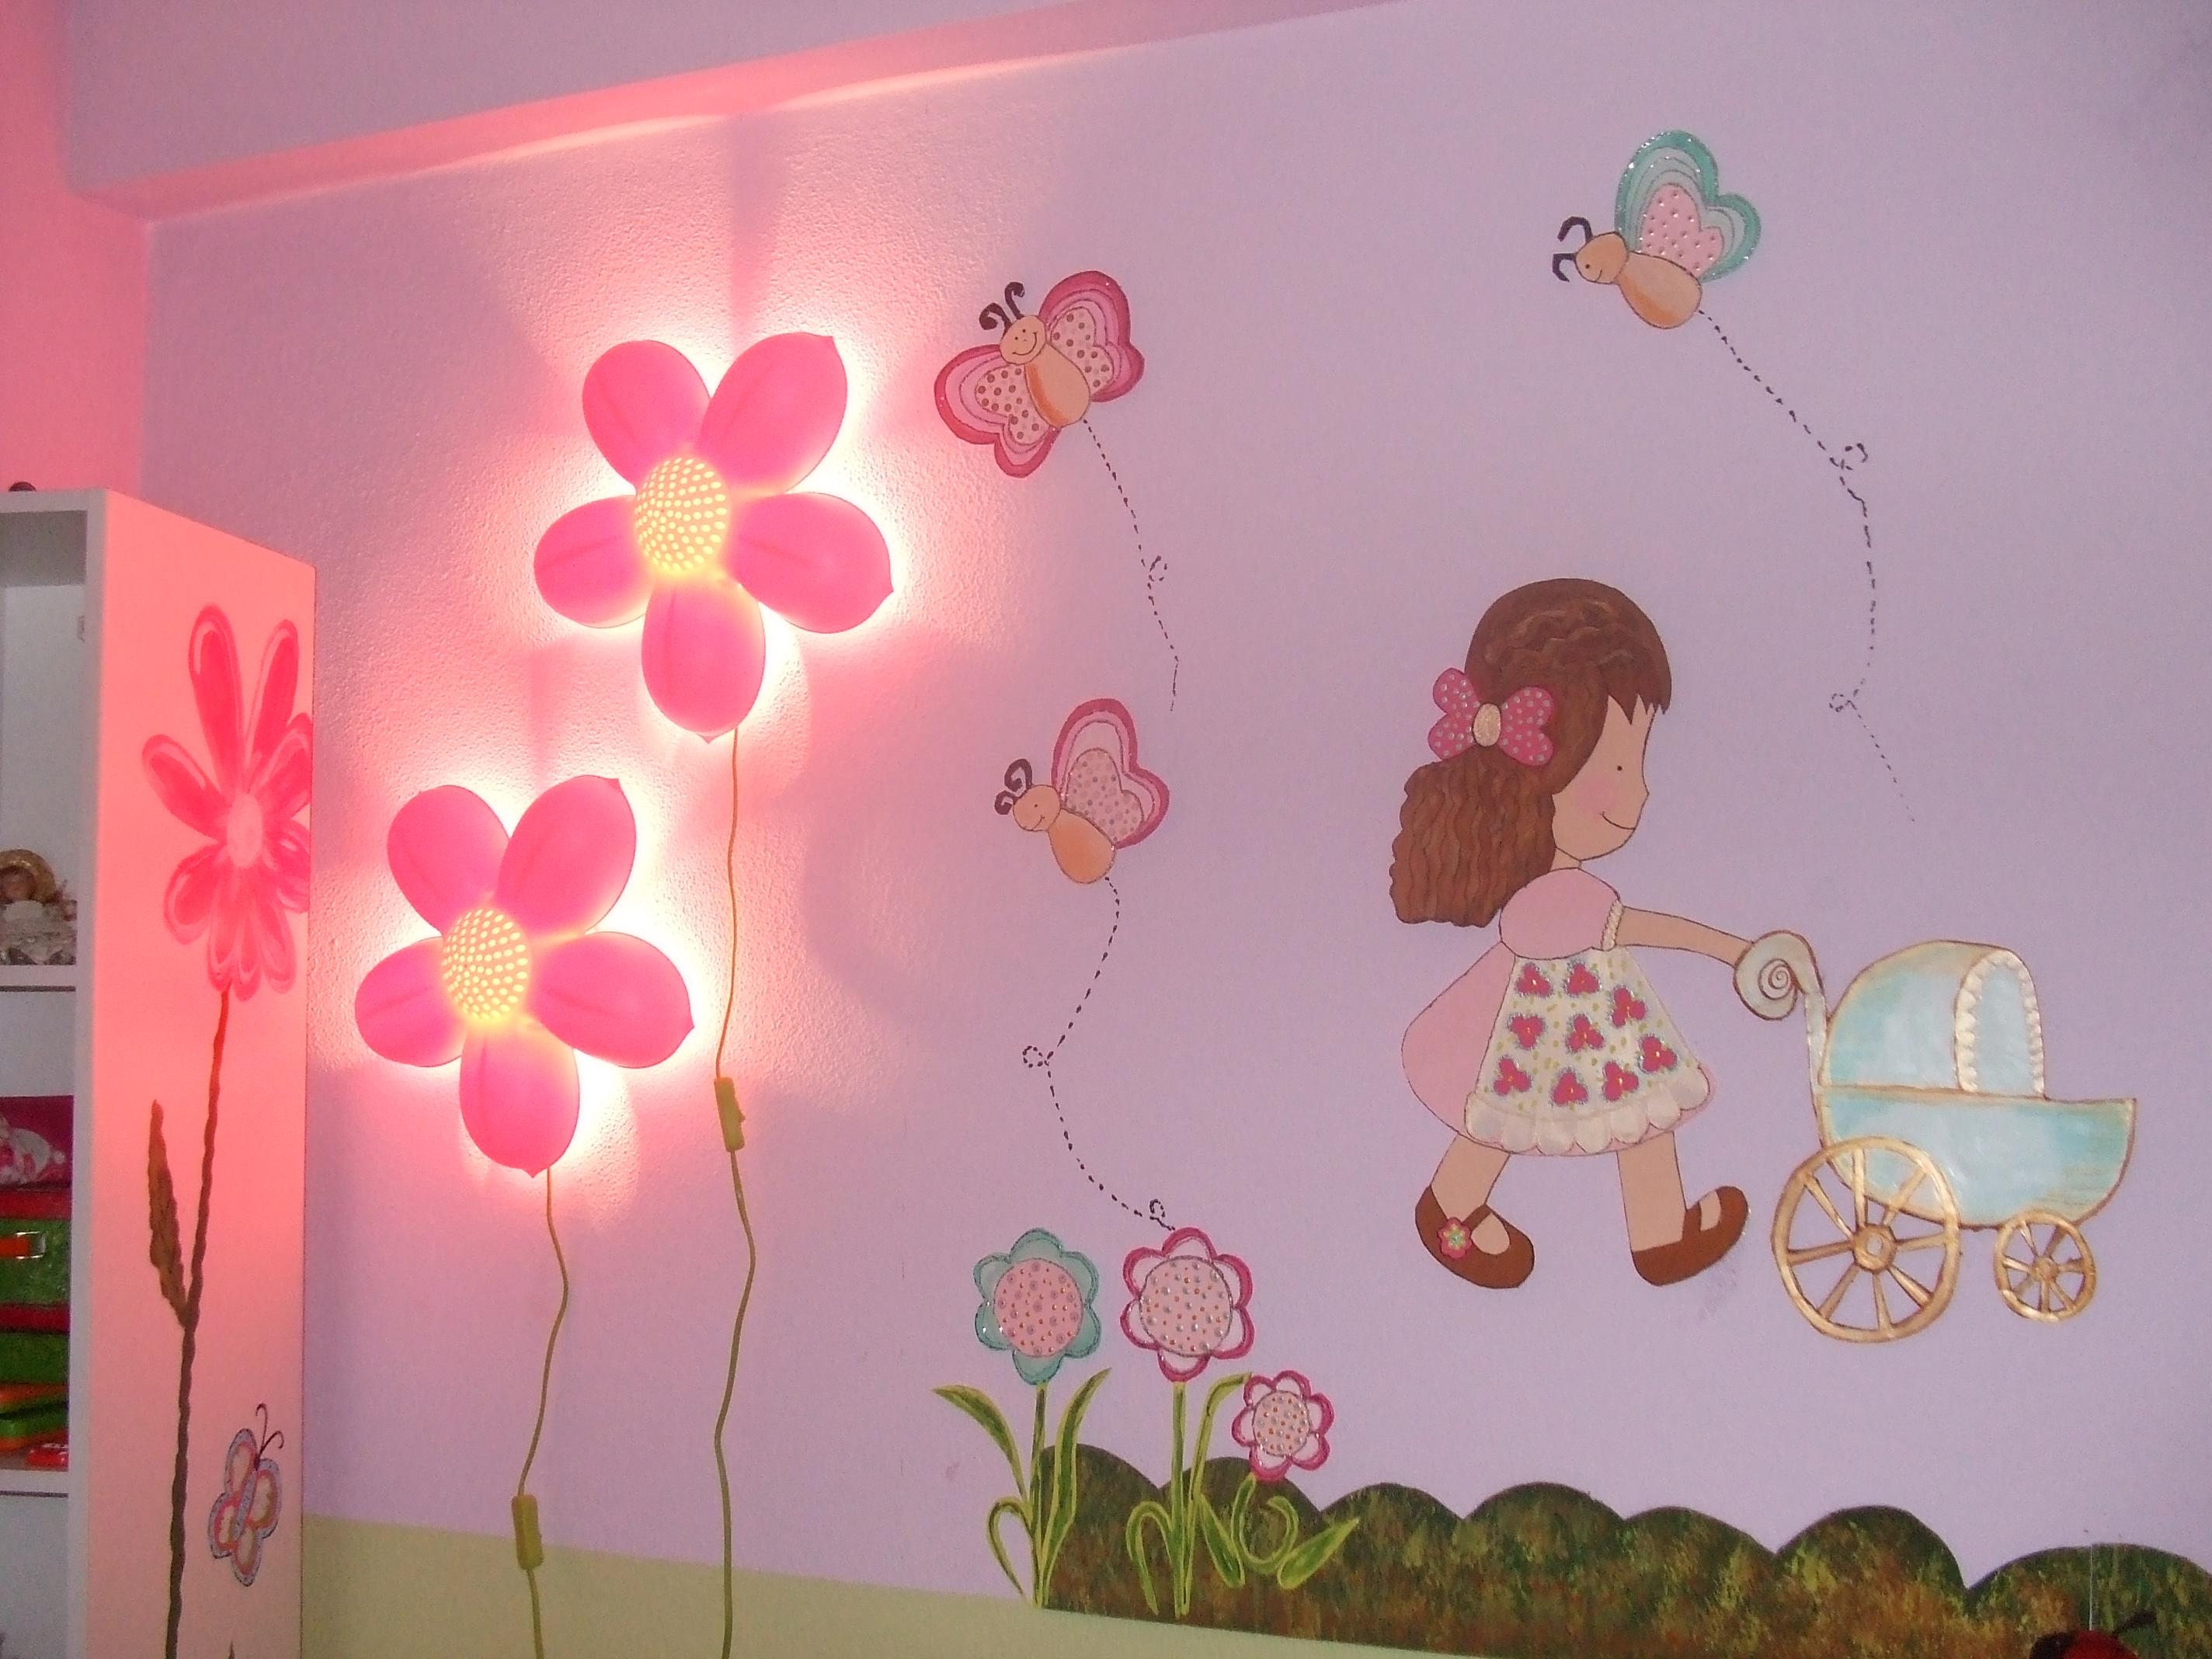 Kids' Room Wall Decor I